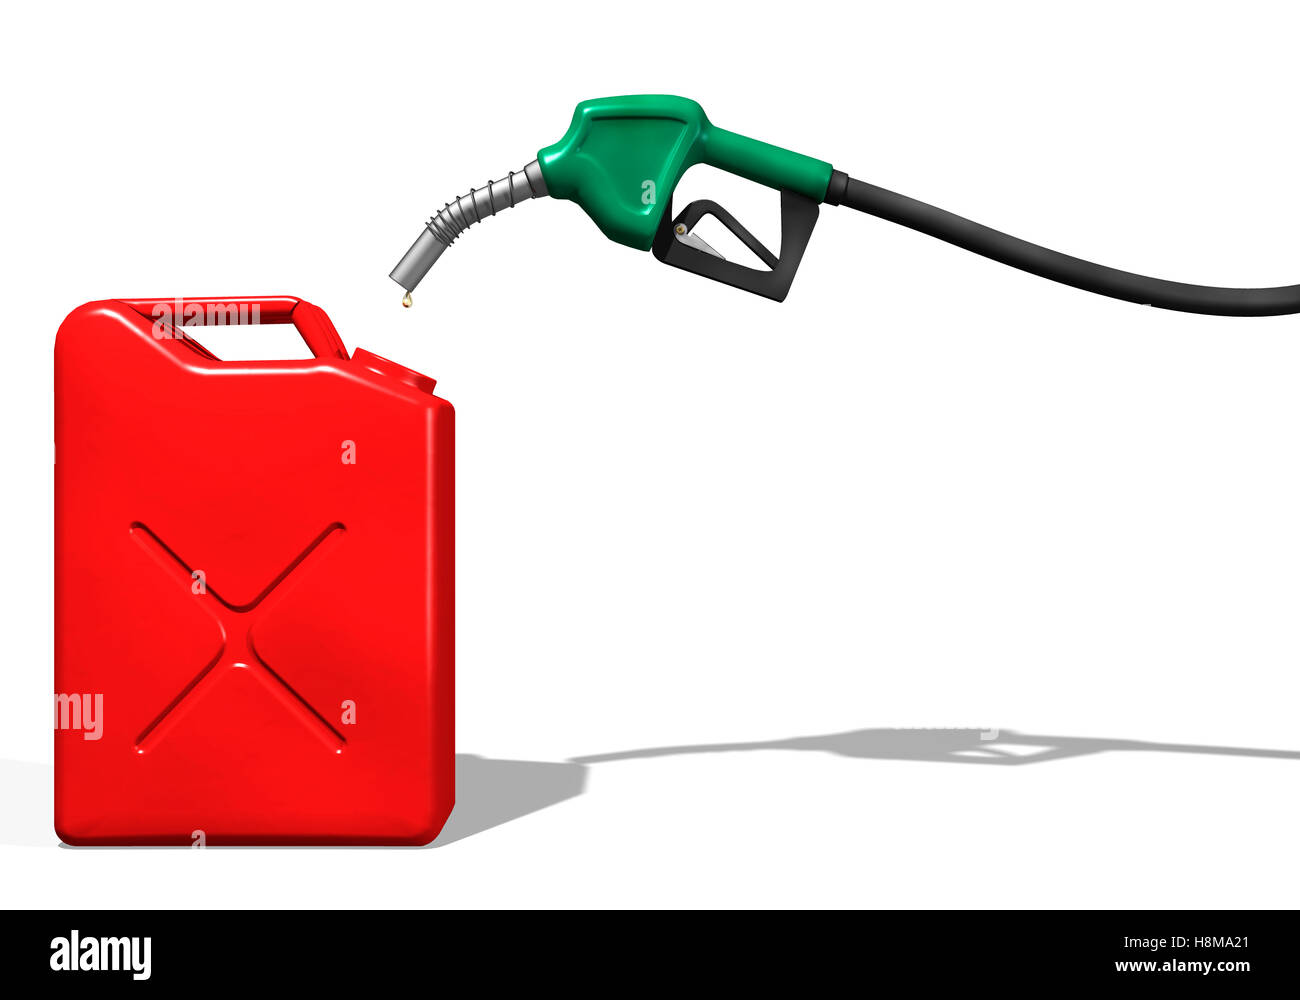 Last drops of gasoline coming out of a gas station nozzle into a canister, illustration - Stock Image